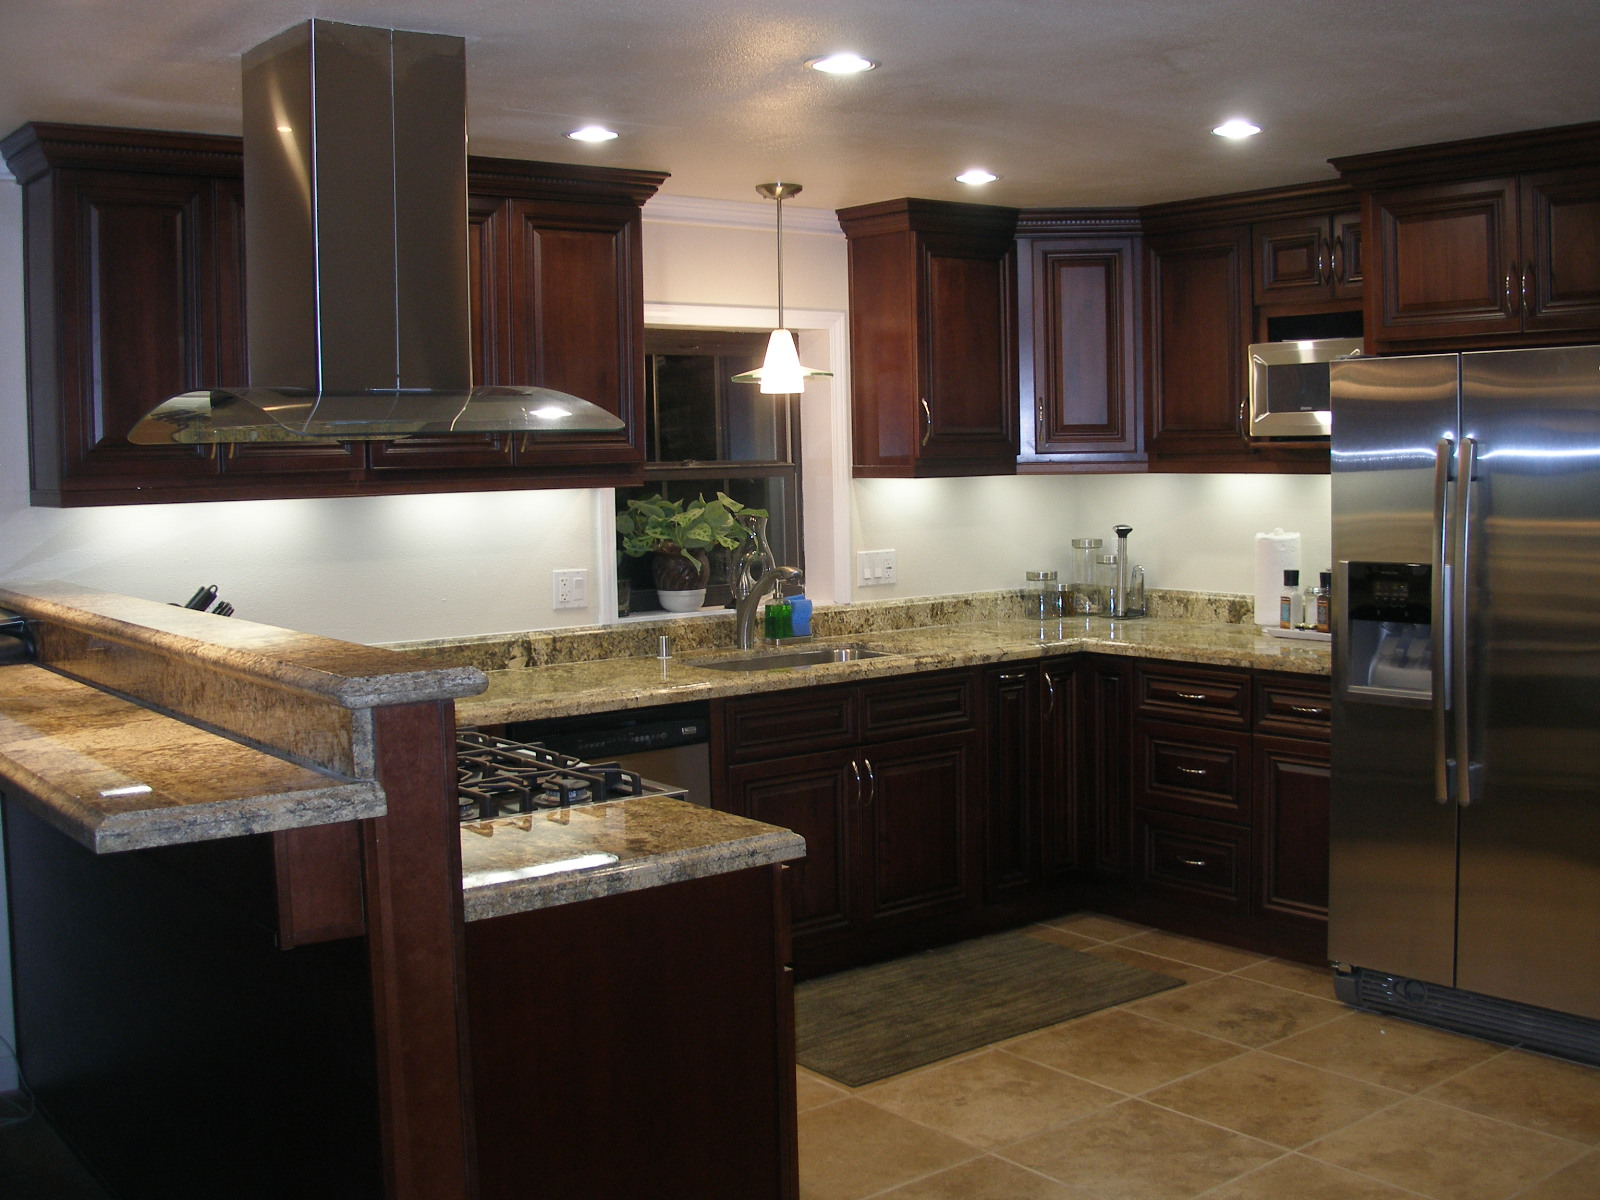 Kitchen remodeling brad t jones construction for I kitchens and renovations